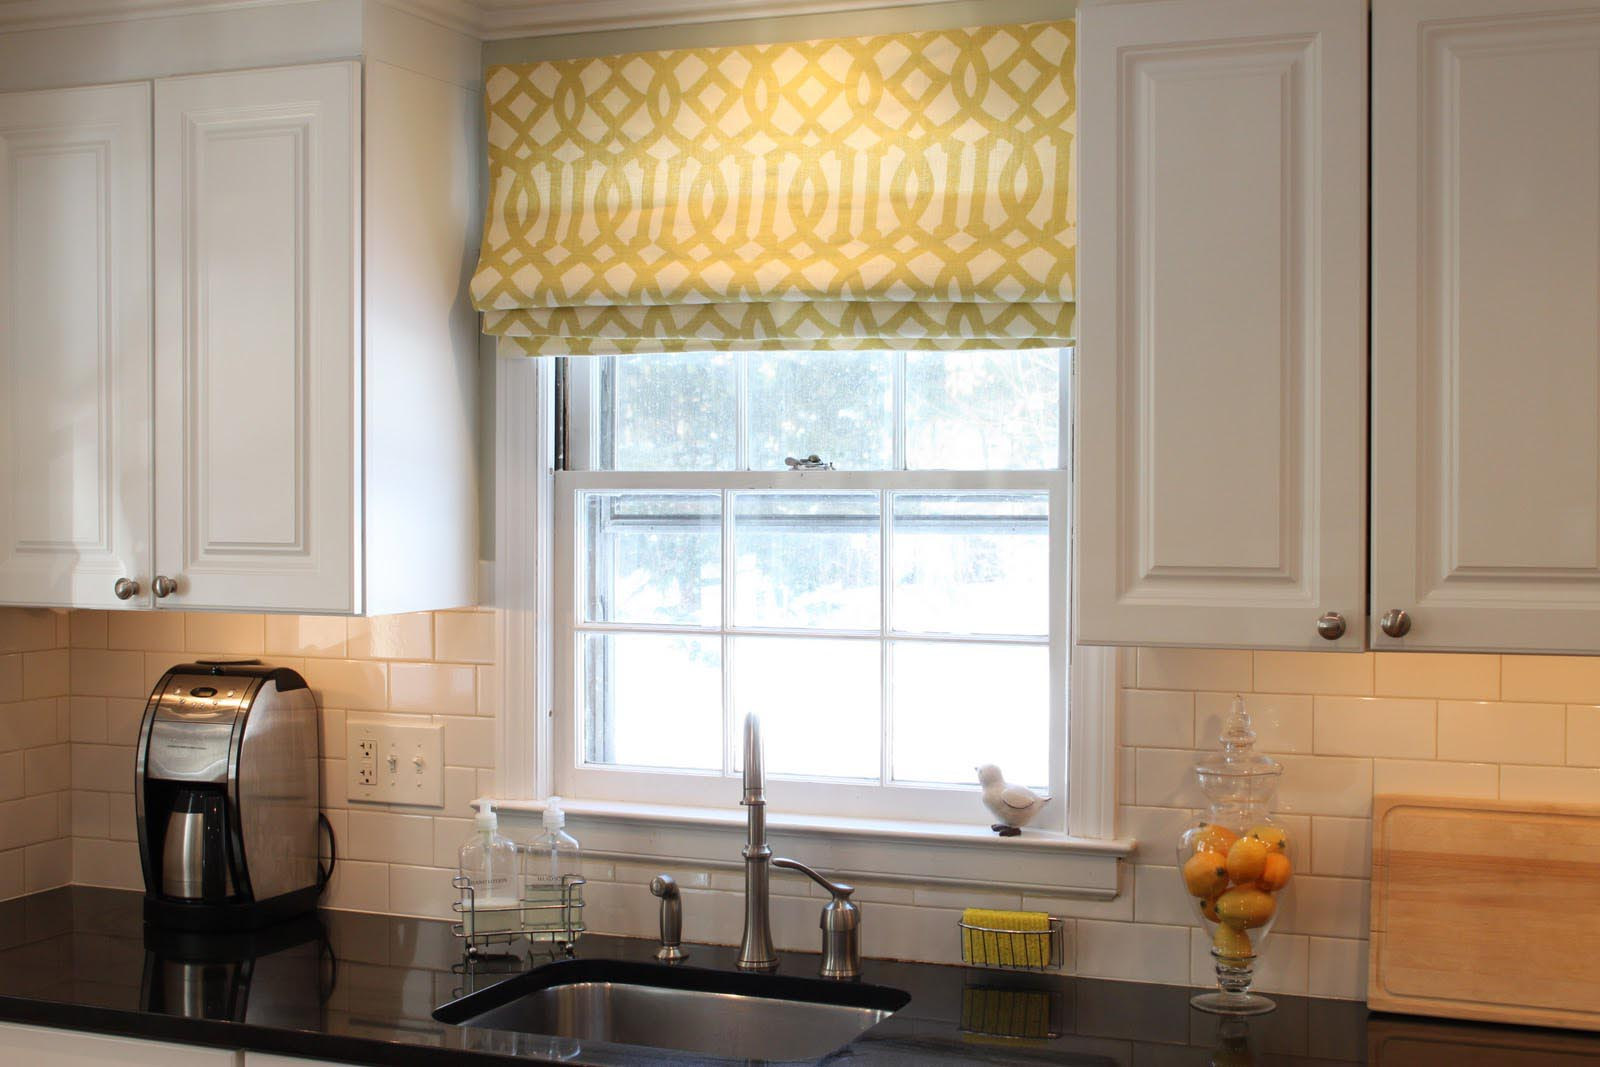 Kitchen window shades blinds window treatments design ideas for Window blinds with designs